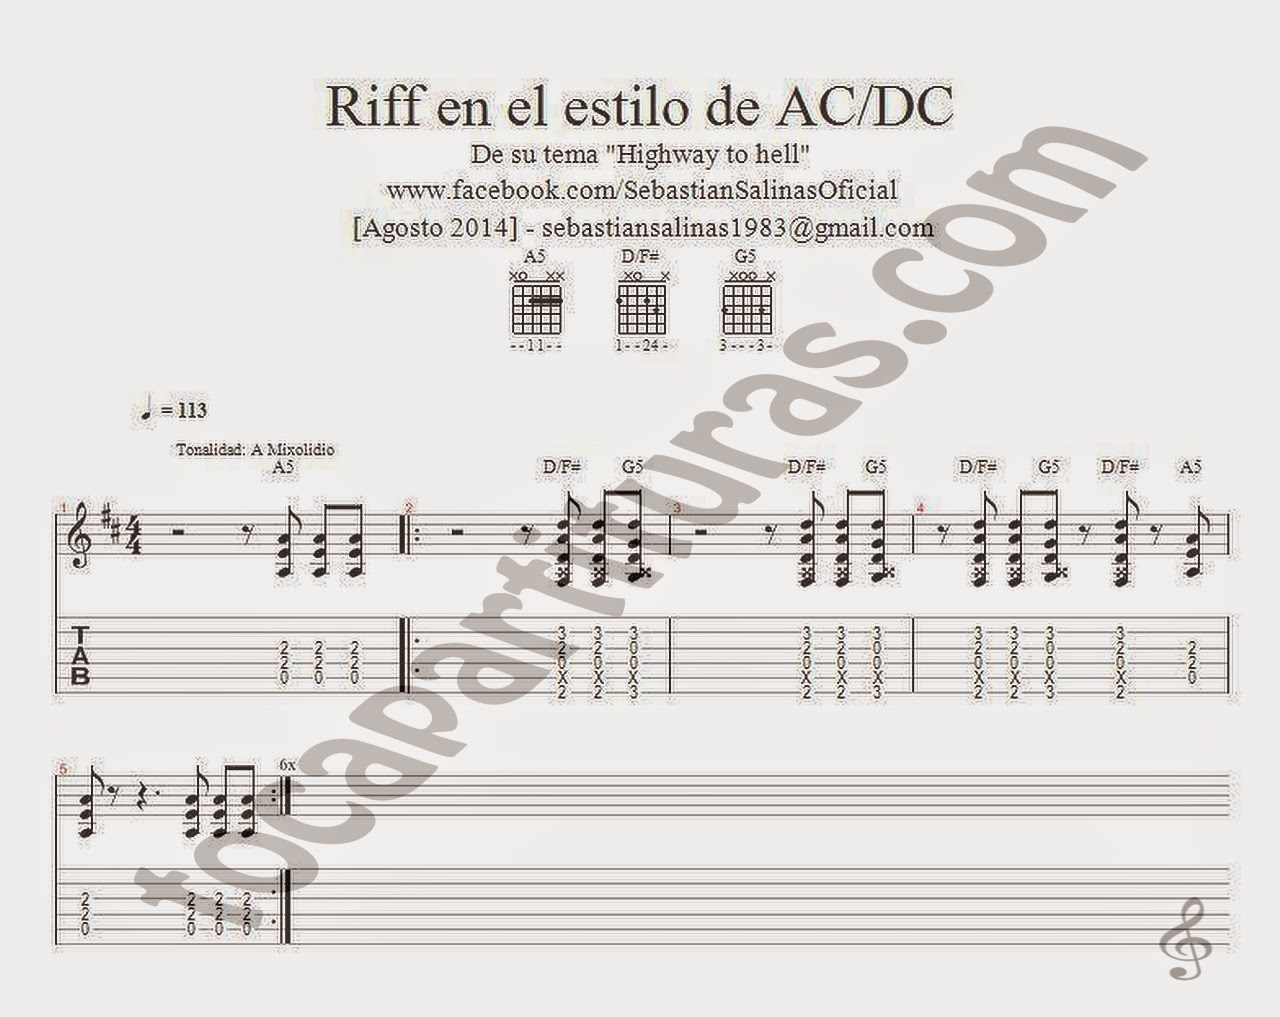 Tablatura con Acordes para Guitarra del Riff estilo AC/DC Highway to hell Sheet Music Tablature for easy guitar with chords Lead sheet